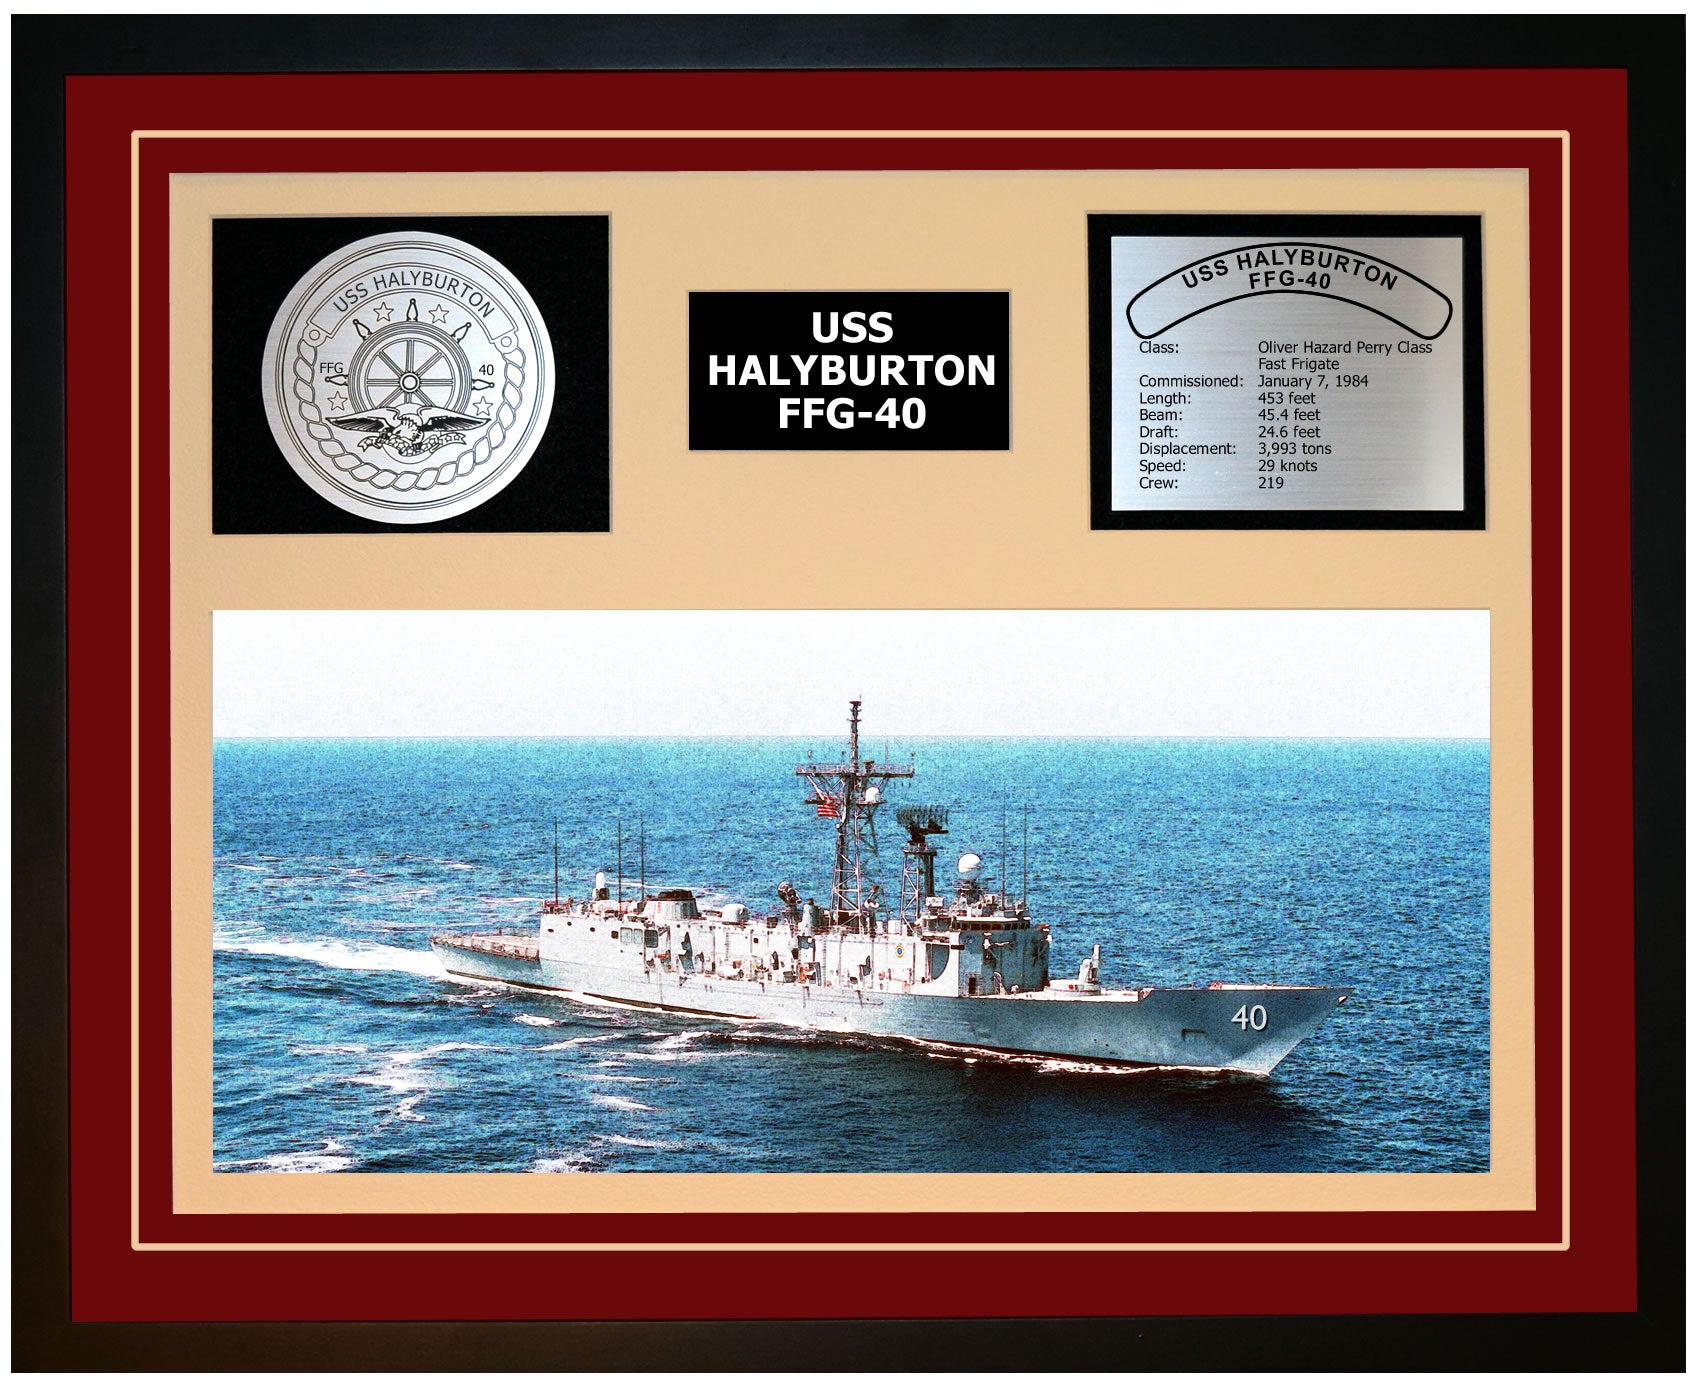 USS HALYBURTON FFG-40 Framed Navy Ship Display Burgundy